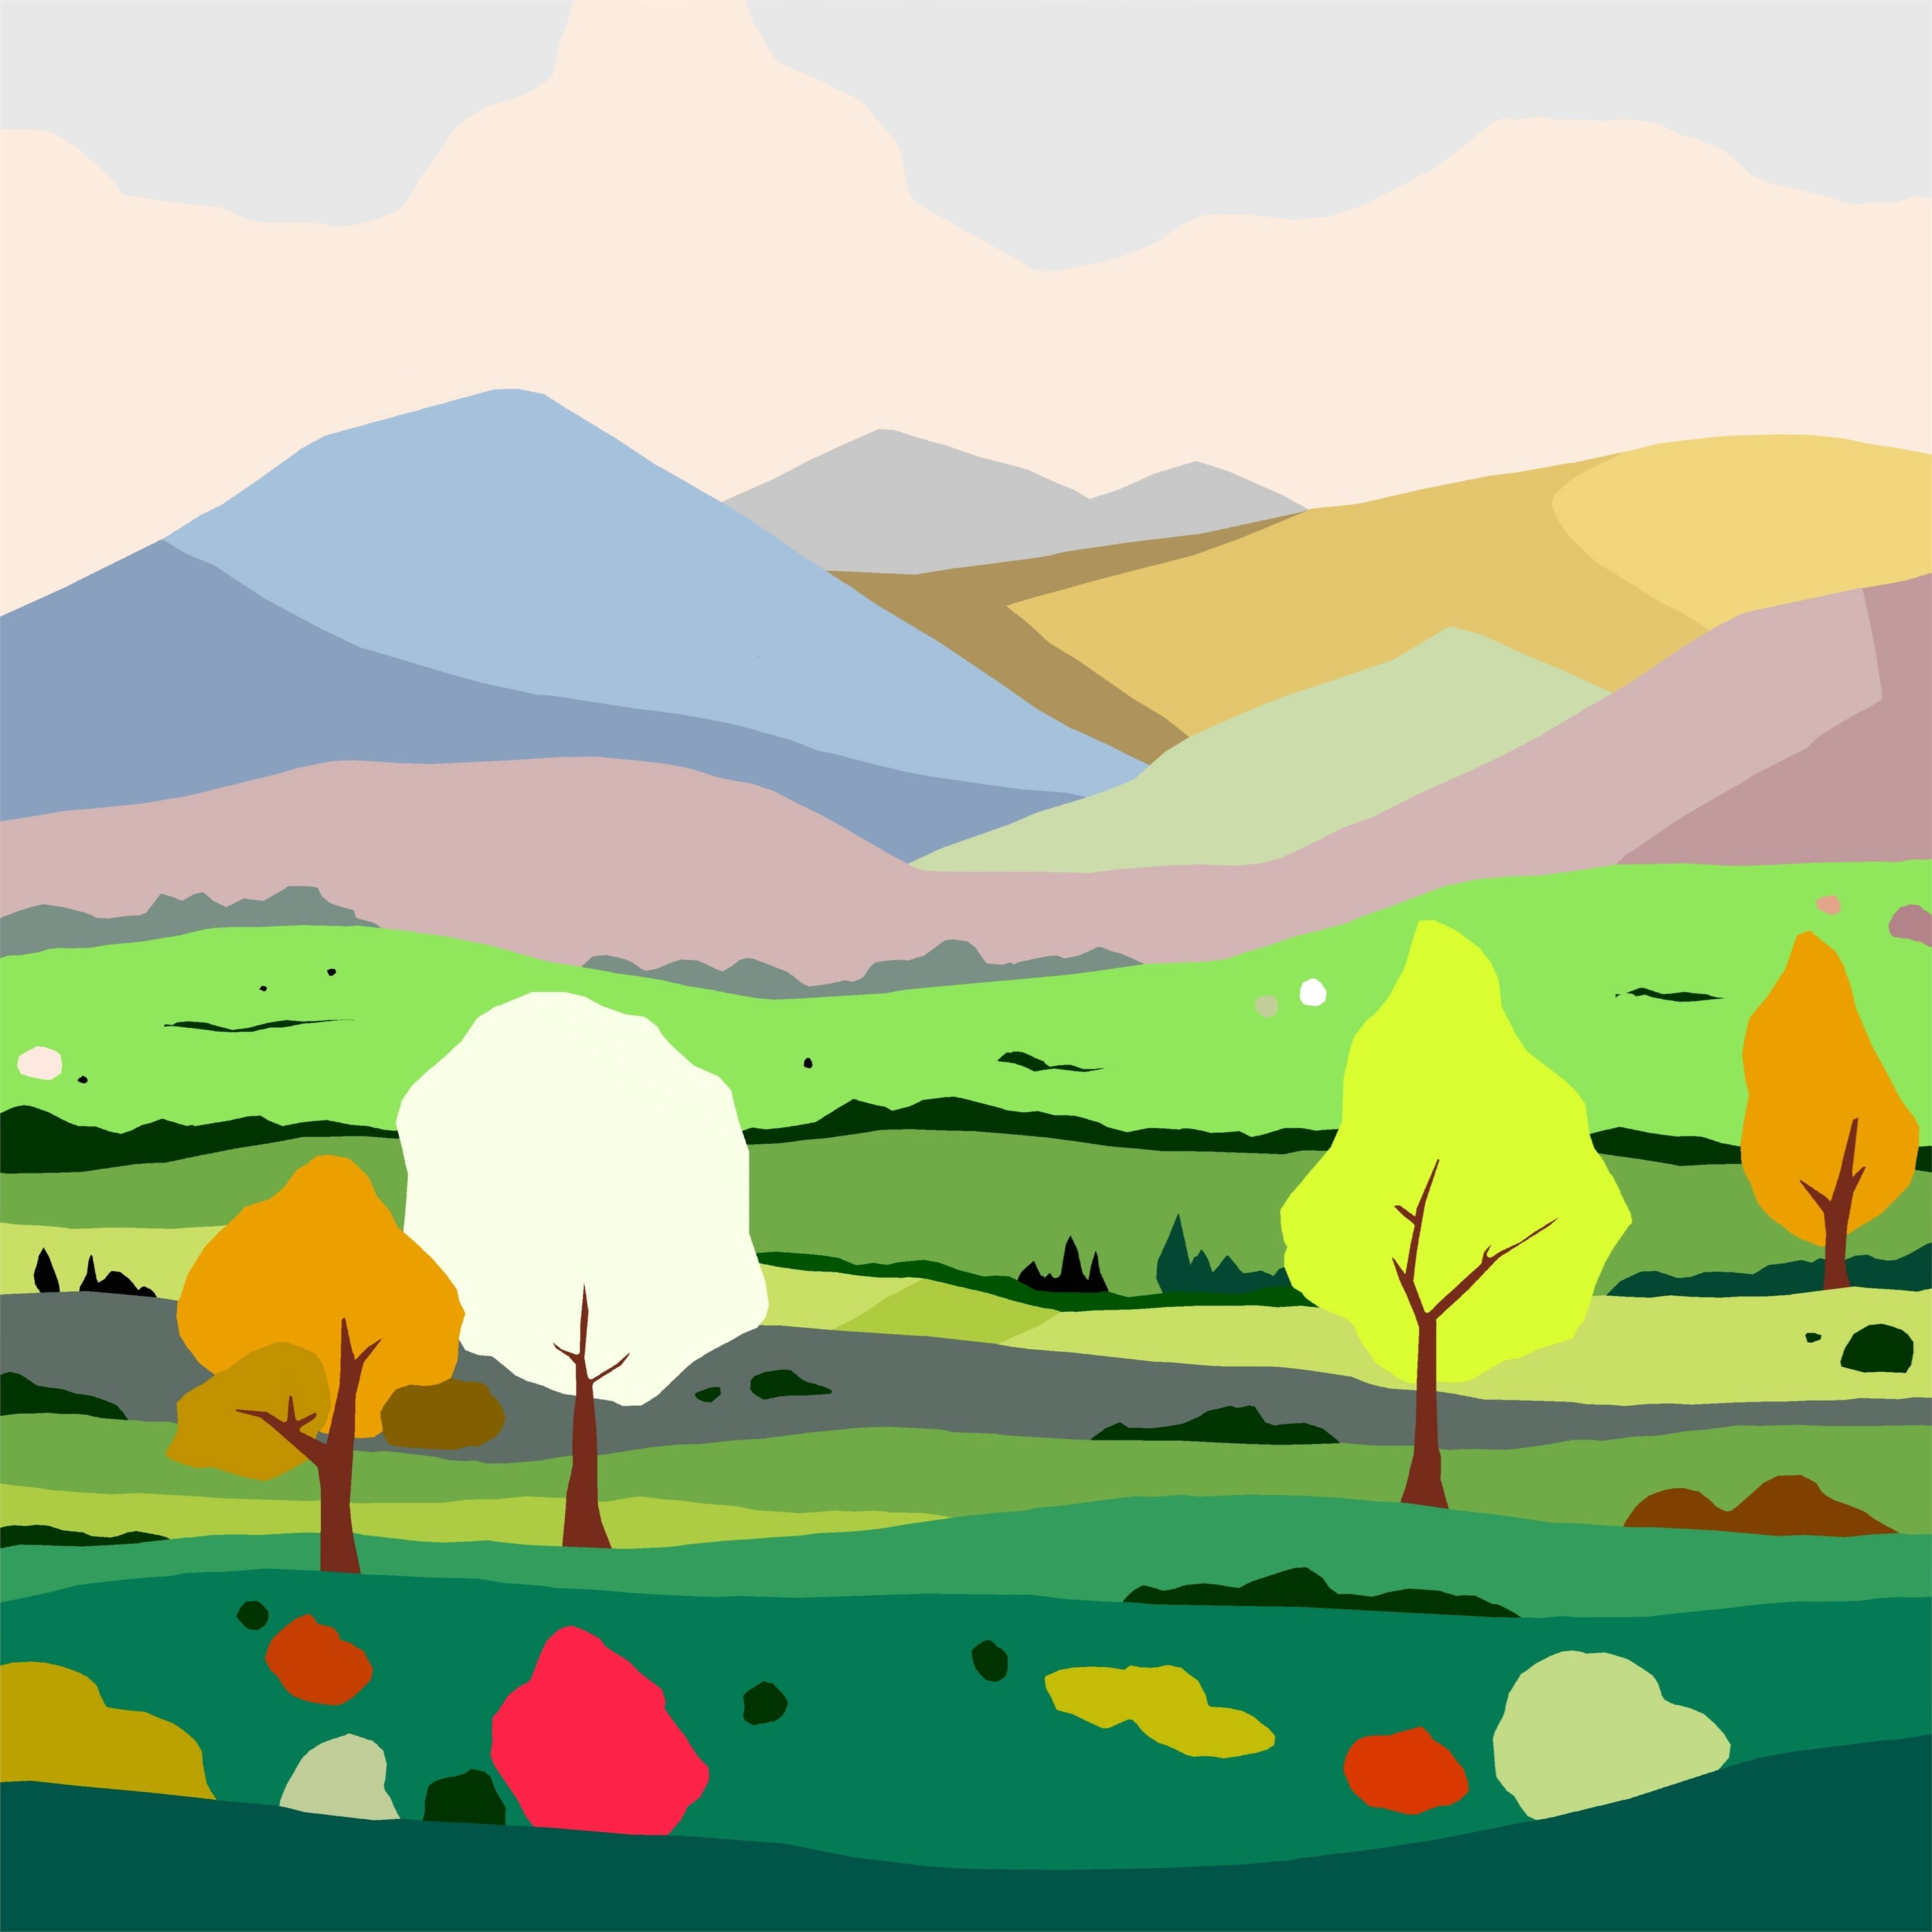 Fields (campos), original Nature Digital Drawing and Illustration by Alejos Lorenzo Vergara